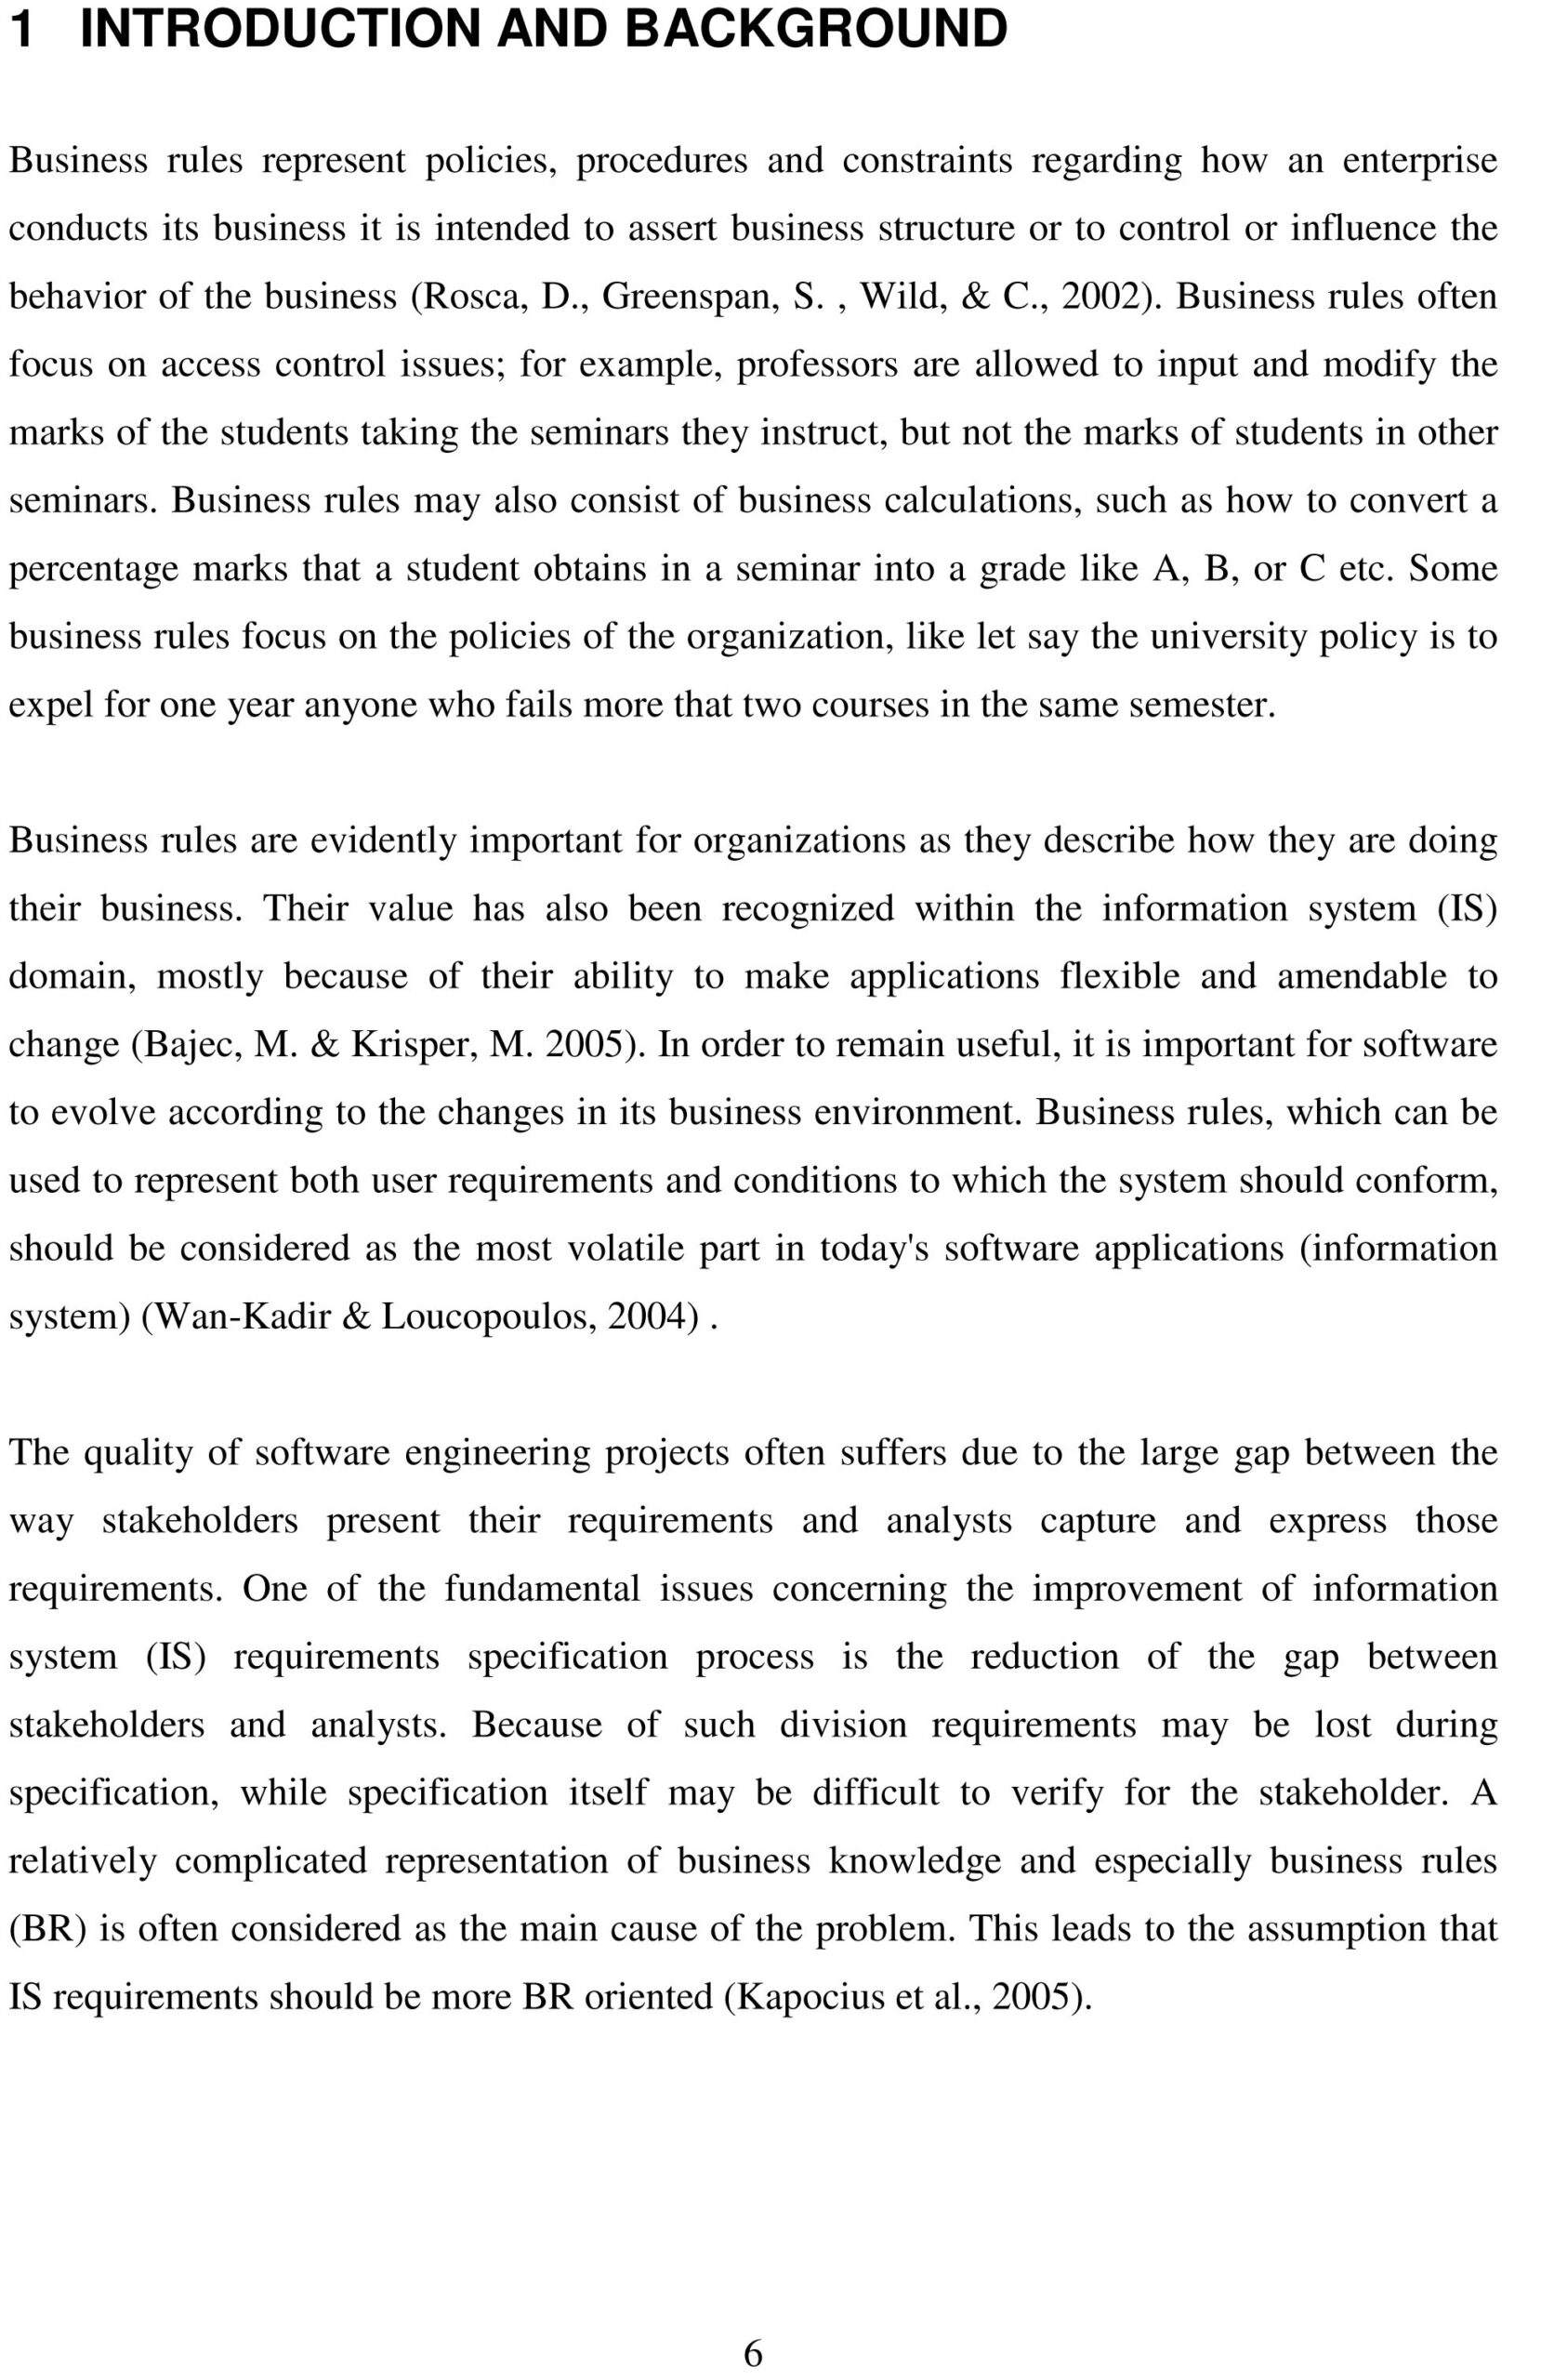 Full Size of Abortion Persuasive Essay Introduction